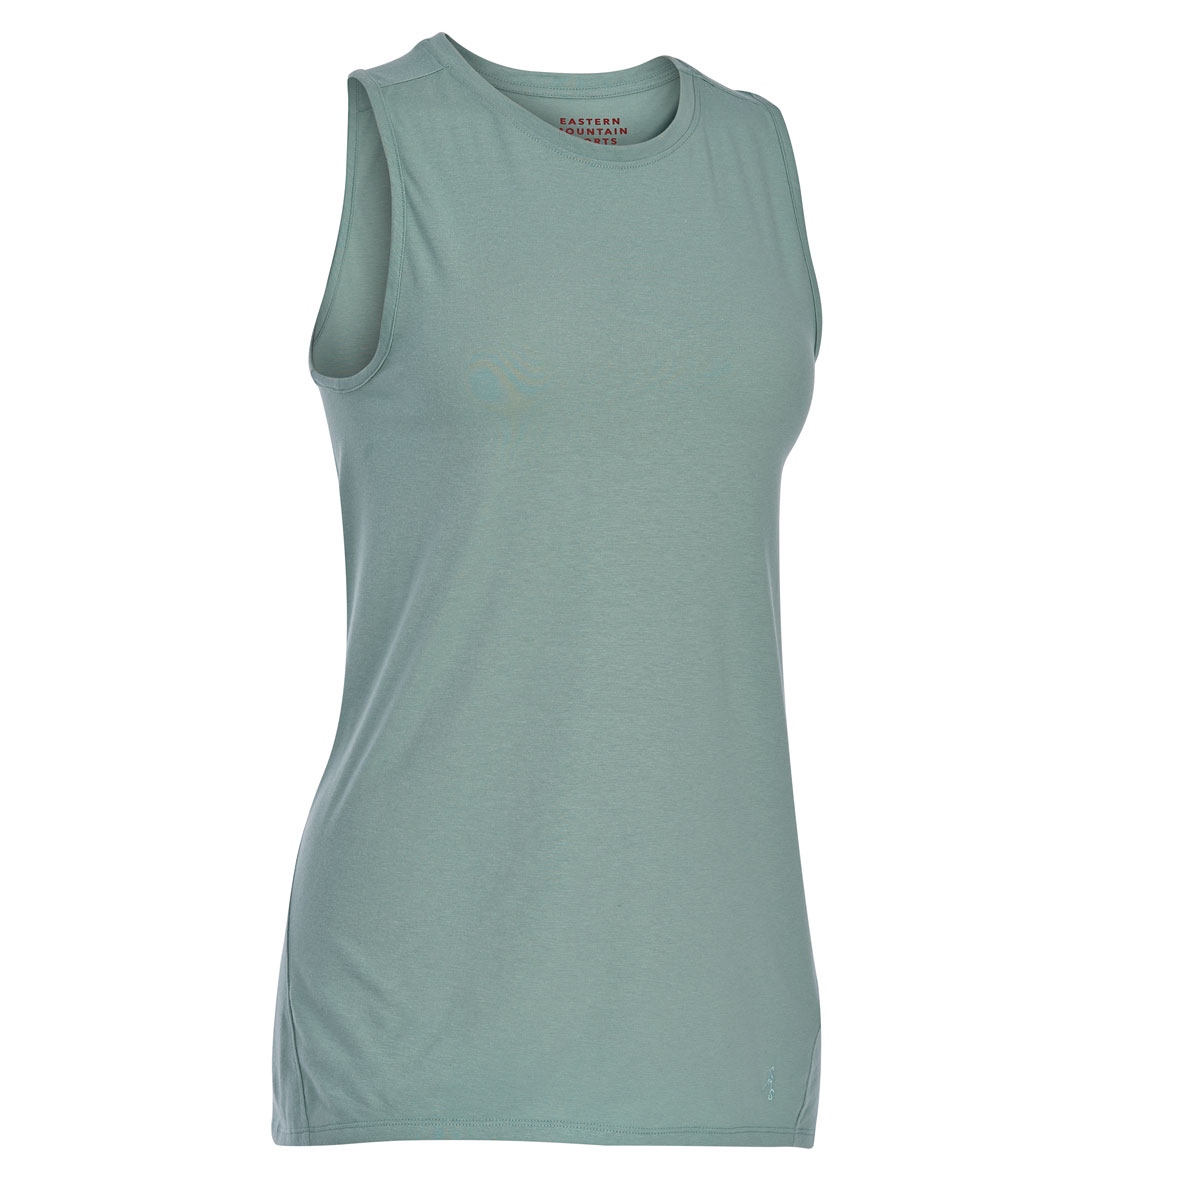 Ems Women's Sweep Tank Top - Green, XL